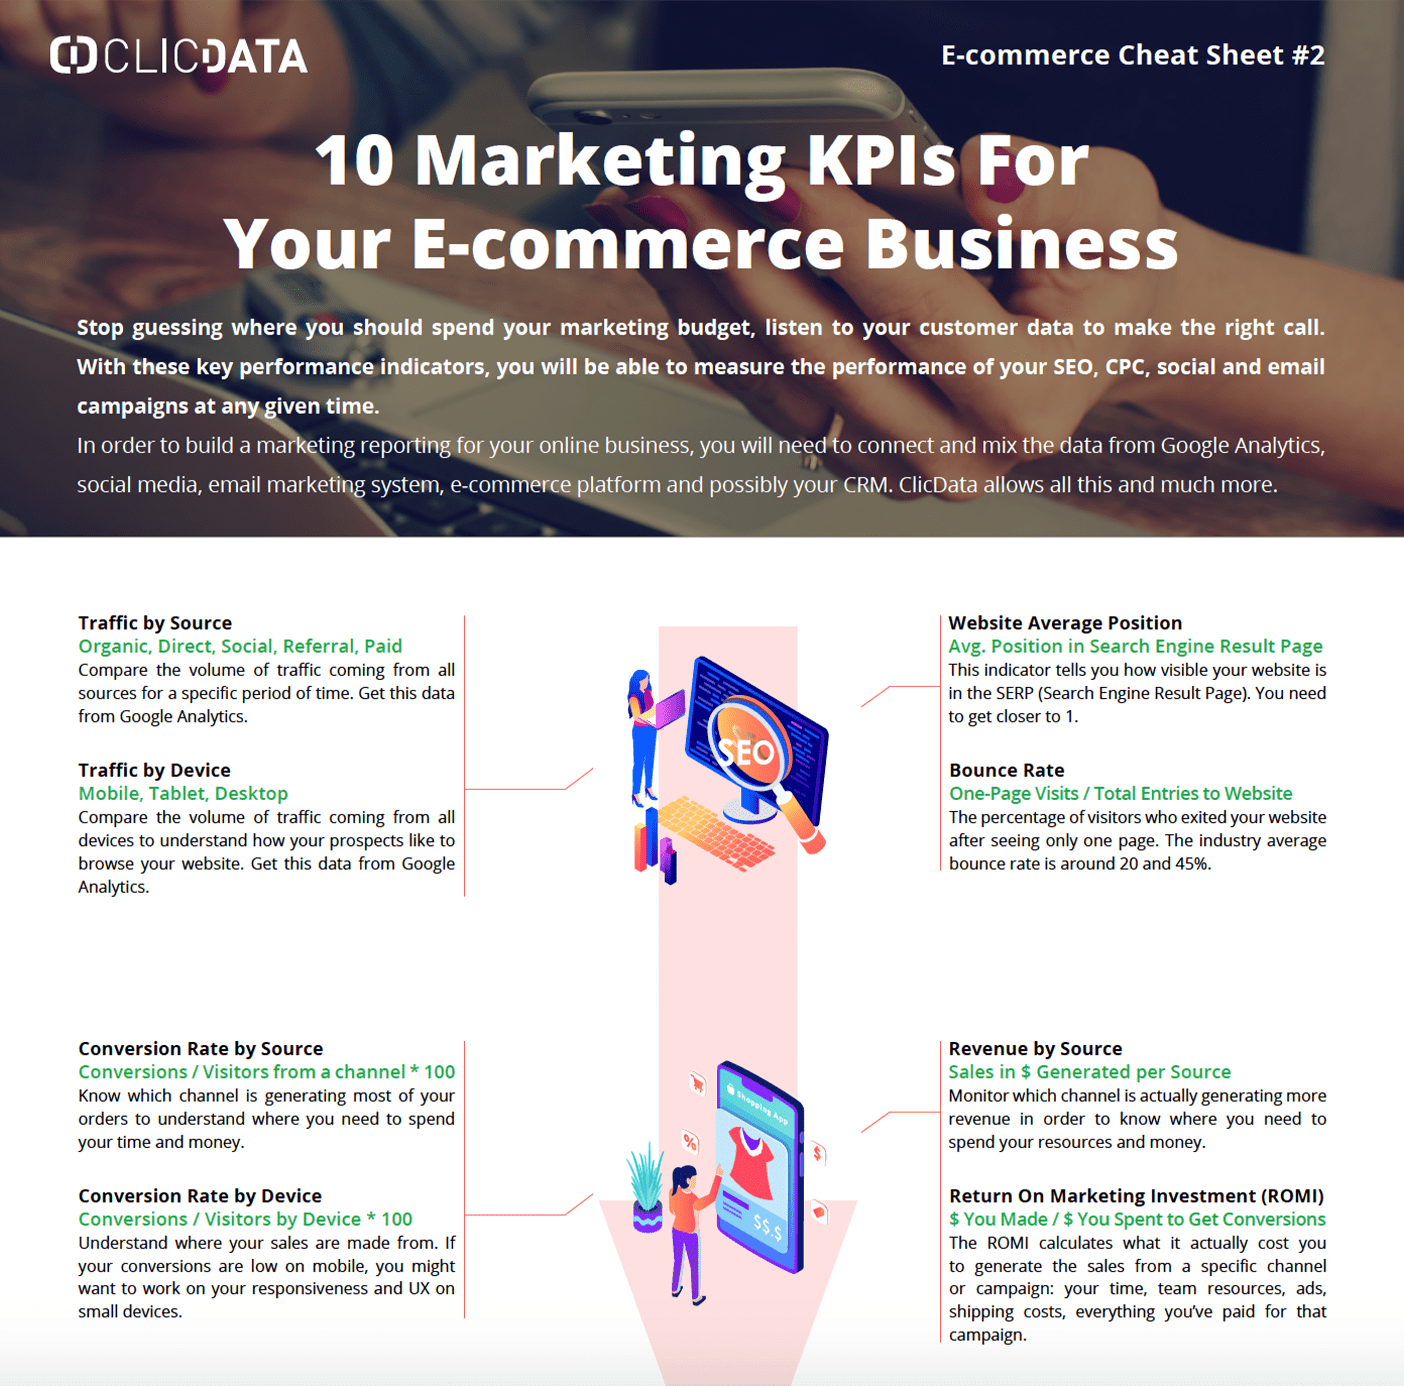 ecommerce-marketing-kpis-cheat-sheet